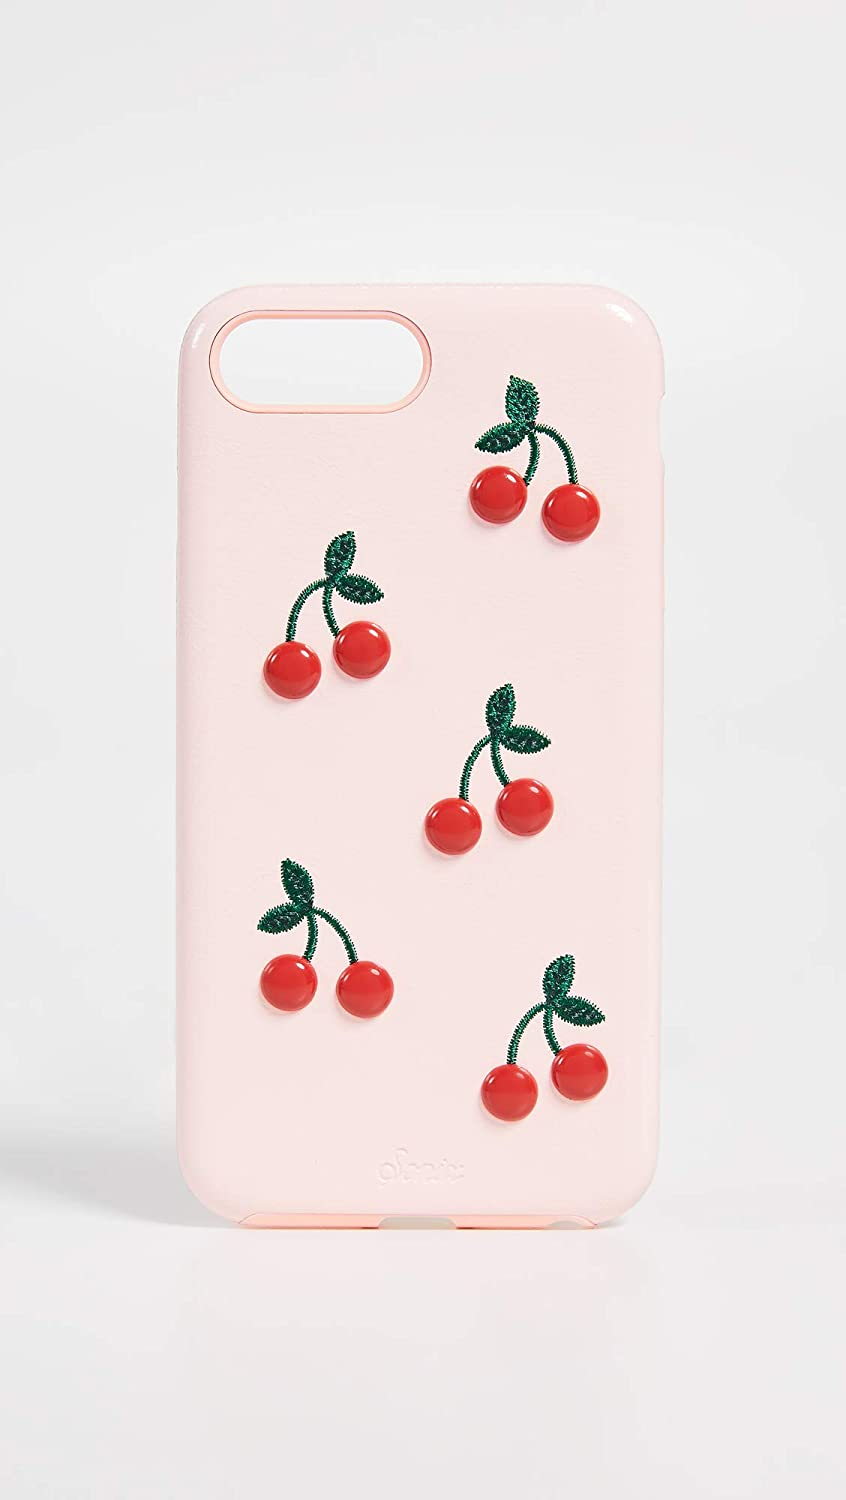 wholesale dealer a9c0b 077eb Sonix Patent Cherry Cell Phone Case - Military Drop Test Certified - Patent  Leather Series for Apple iPhone 6+, 6s+, 7+, 8+